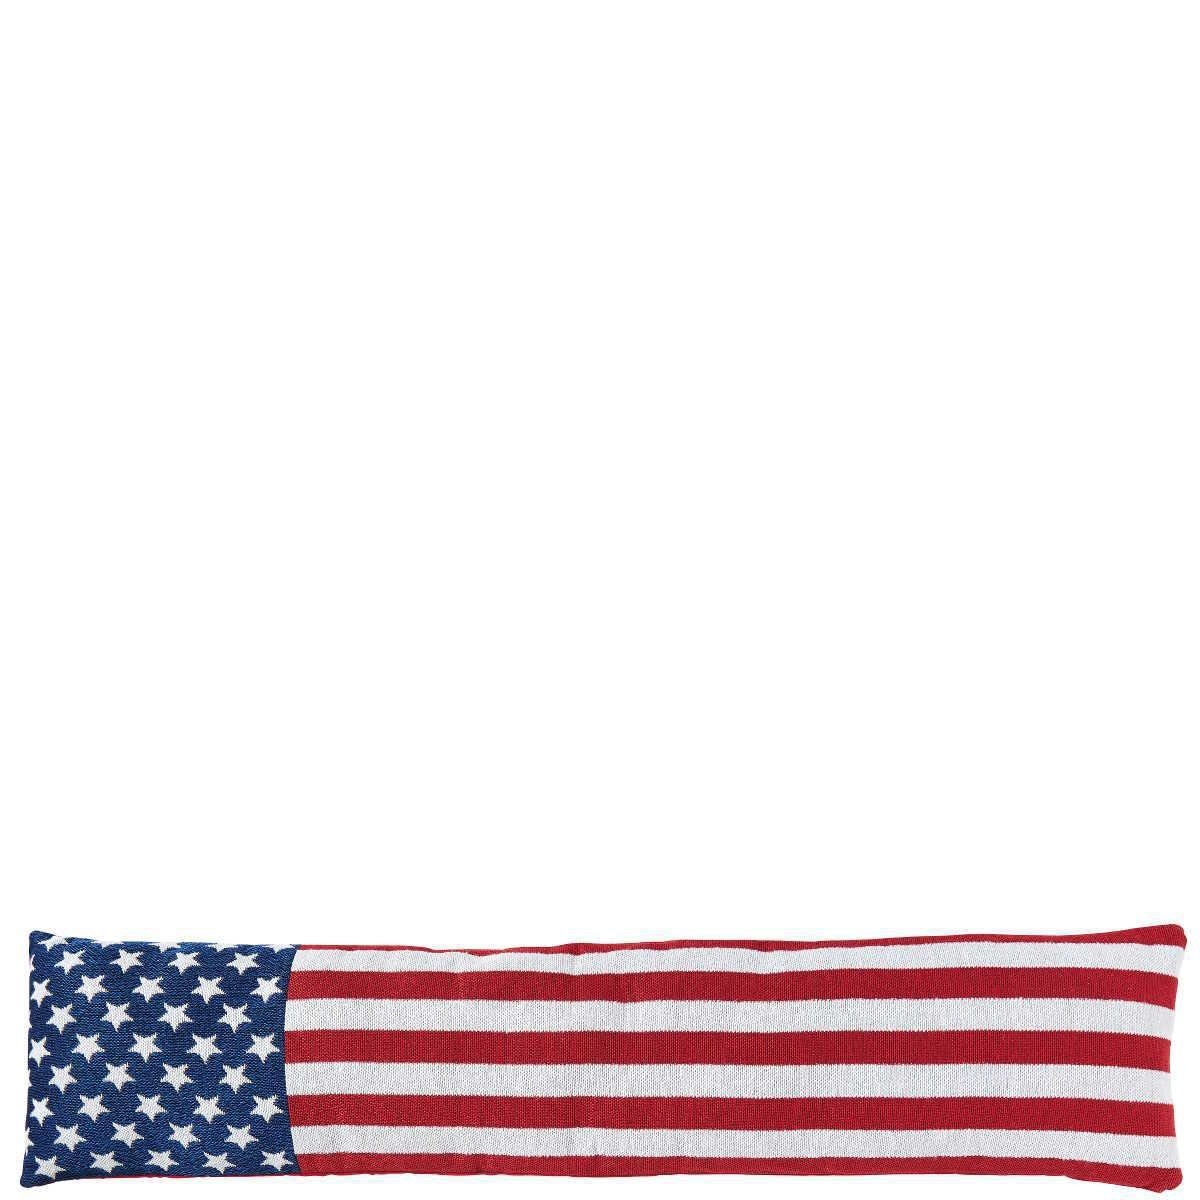 BUTLERS COSY HOME »Zugluftstopper US Flagge«